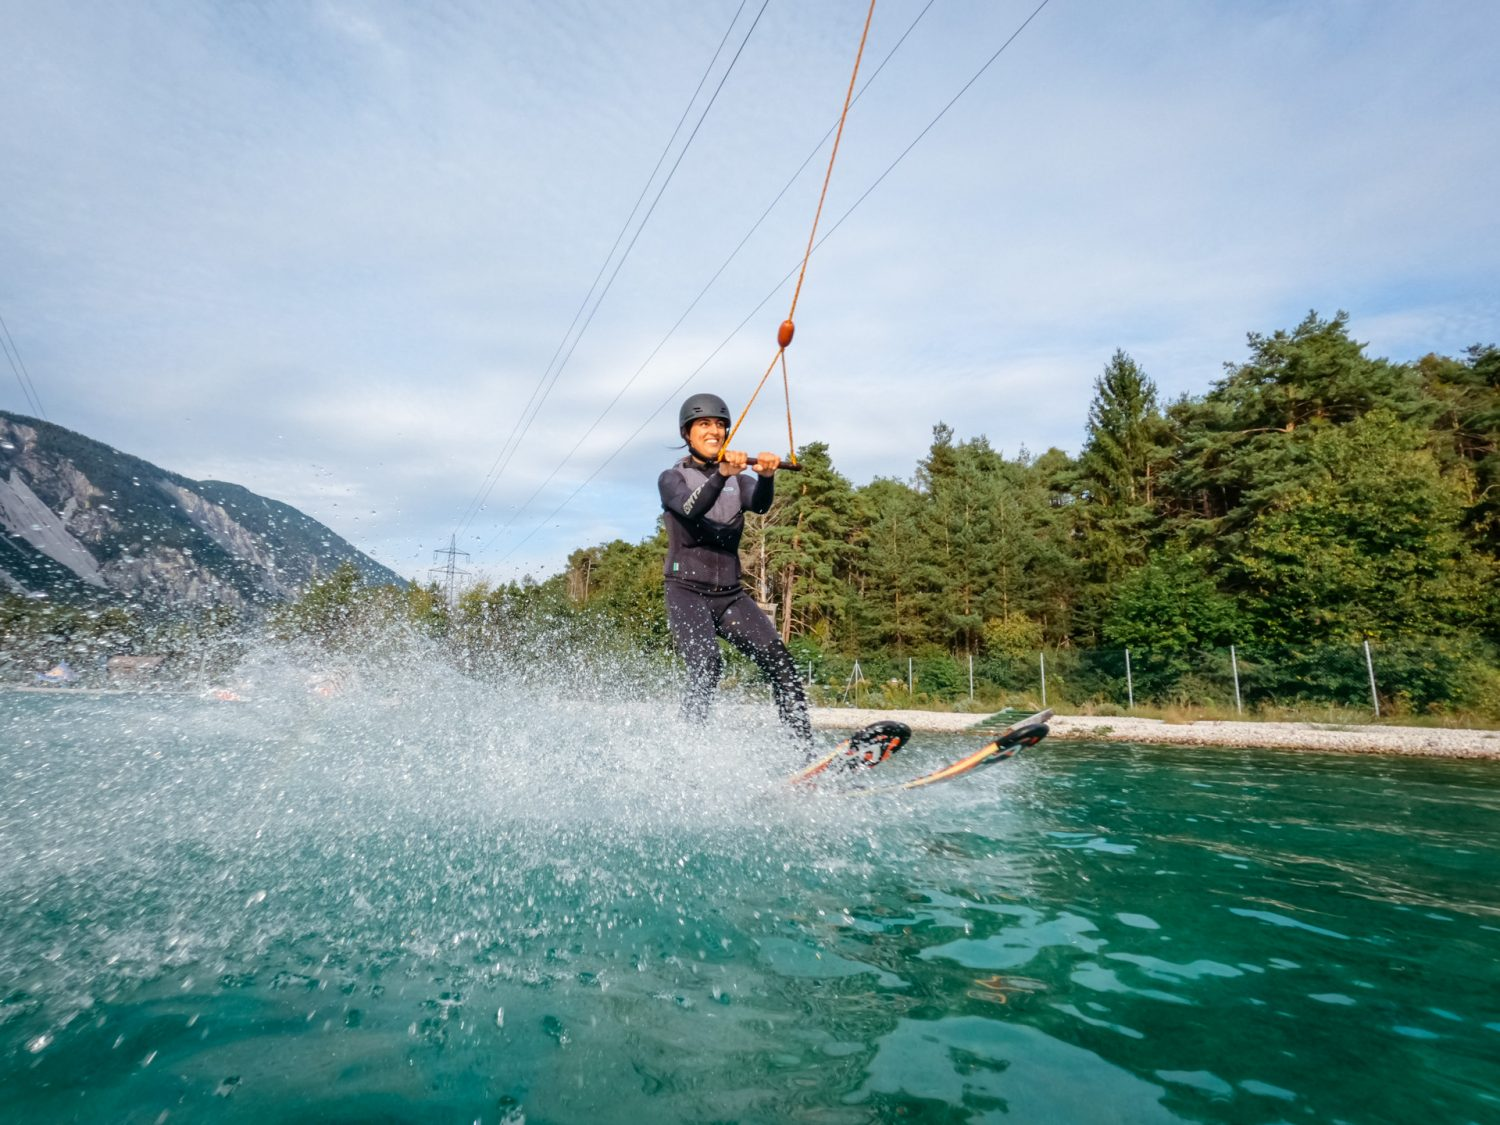 Waterskiing at Wake AREA in Tyrol, Austria